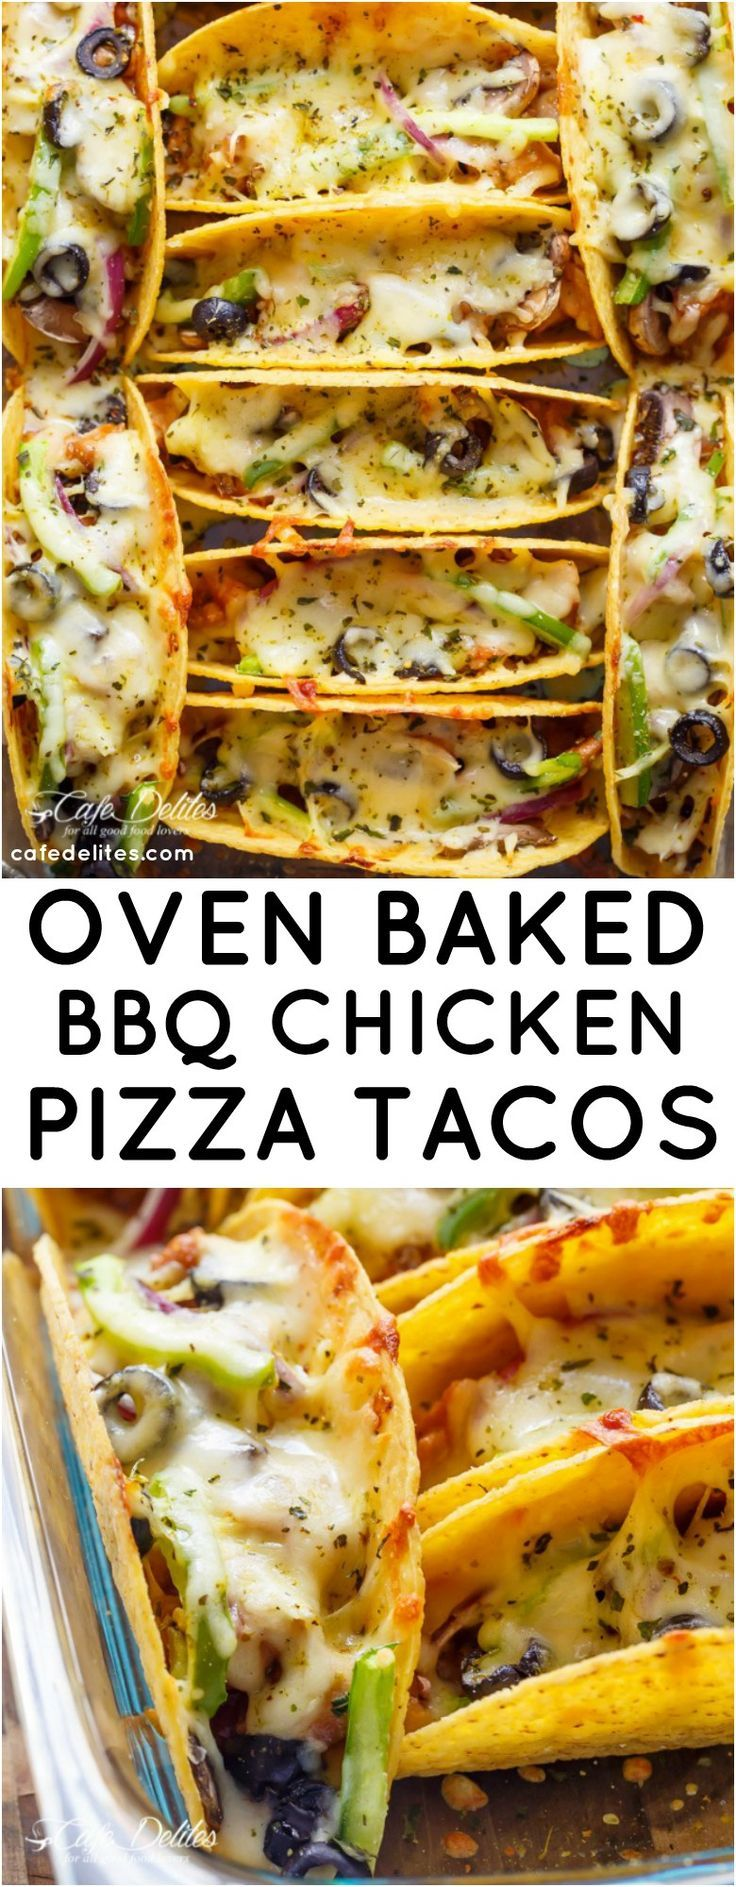 Easy Oven Baked Barbecue Chicken Pizza Tacos are full of pizza flavours, stuffed inside a crispy taco shell, to give you the BEST of both worlds | http://cafedelites.com